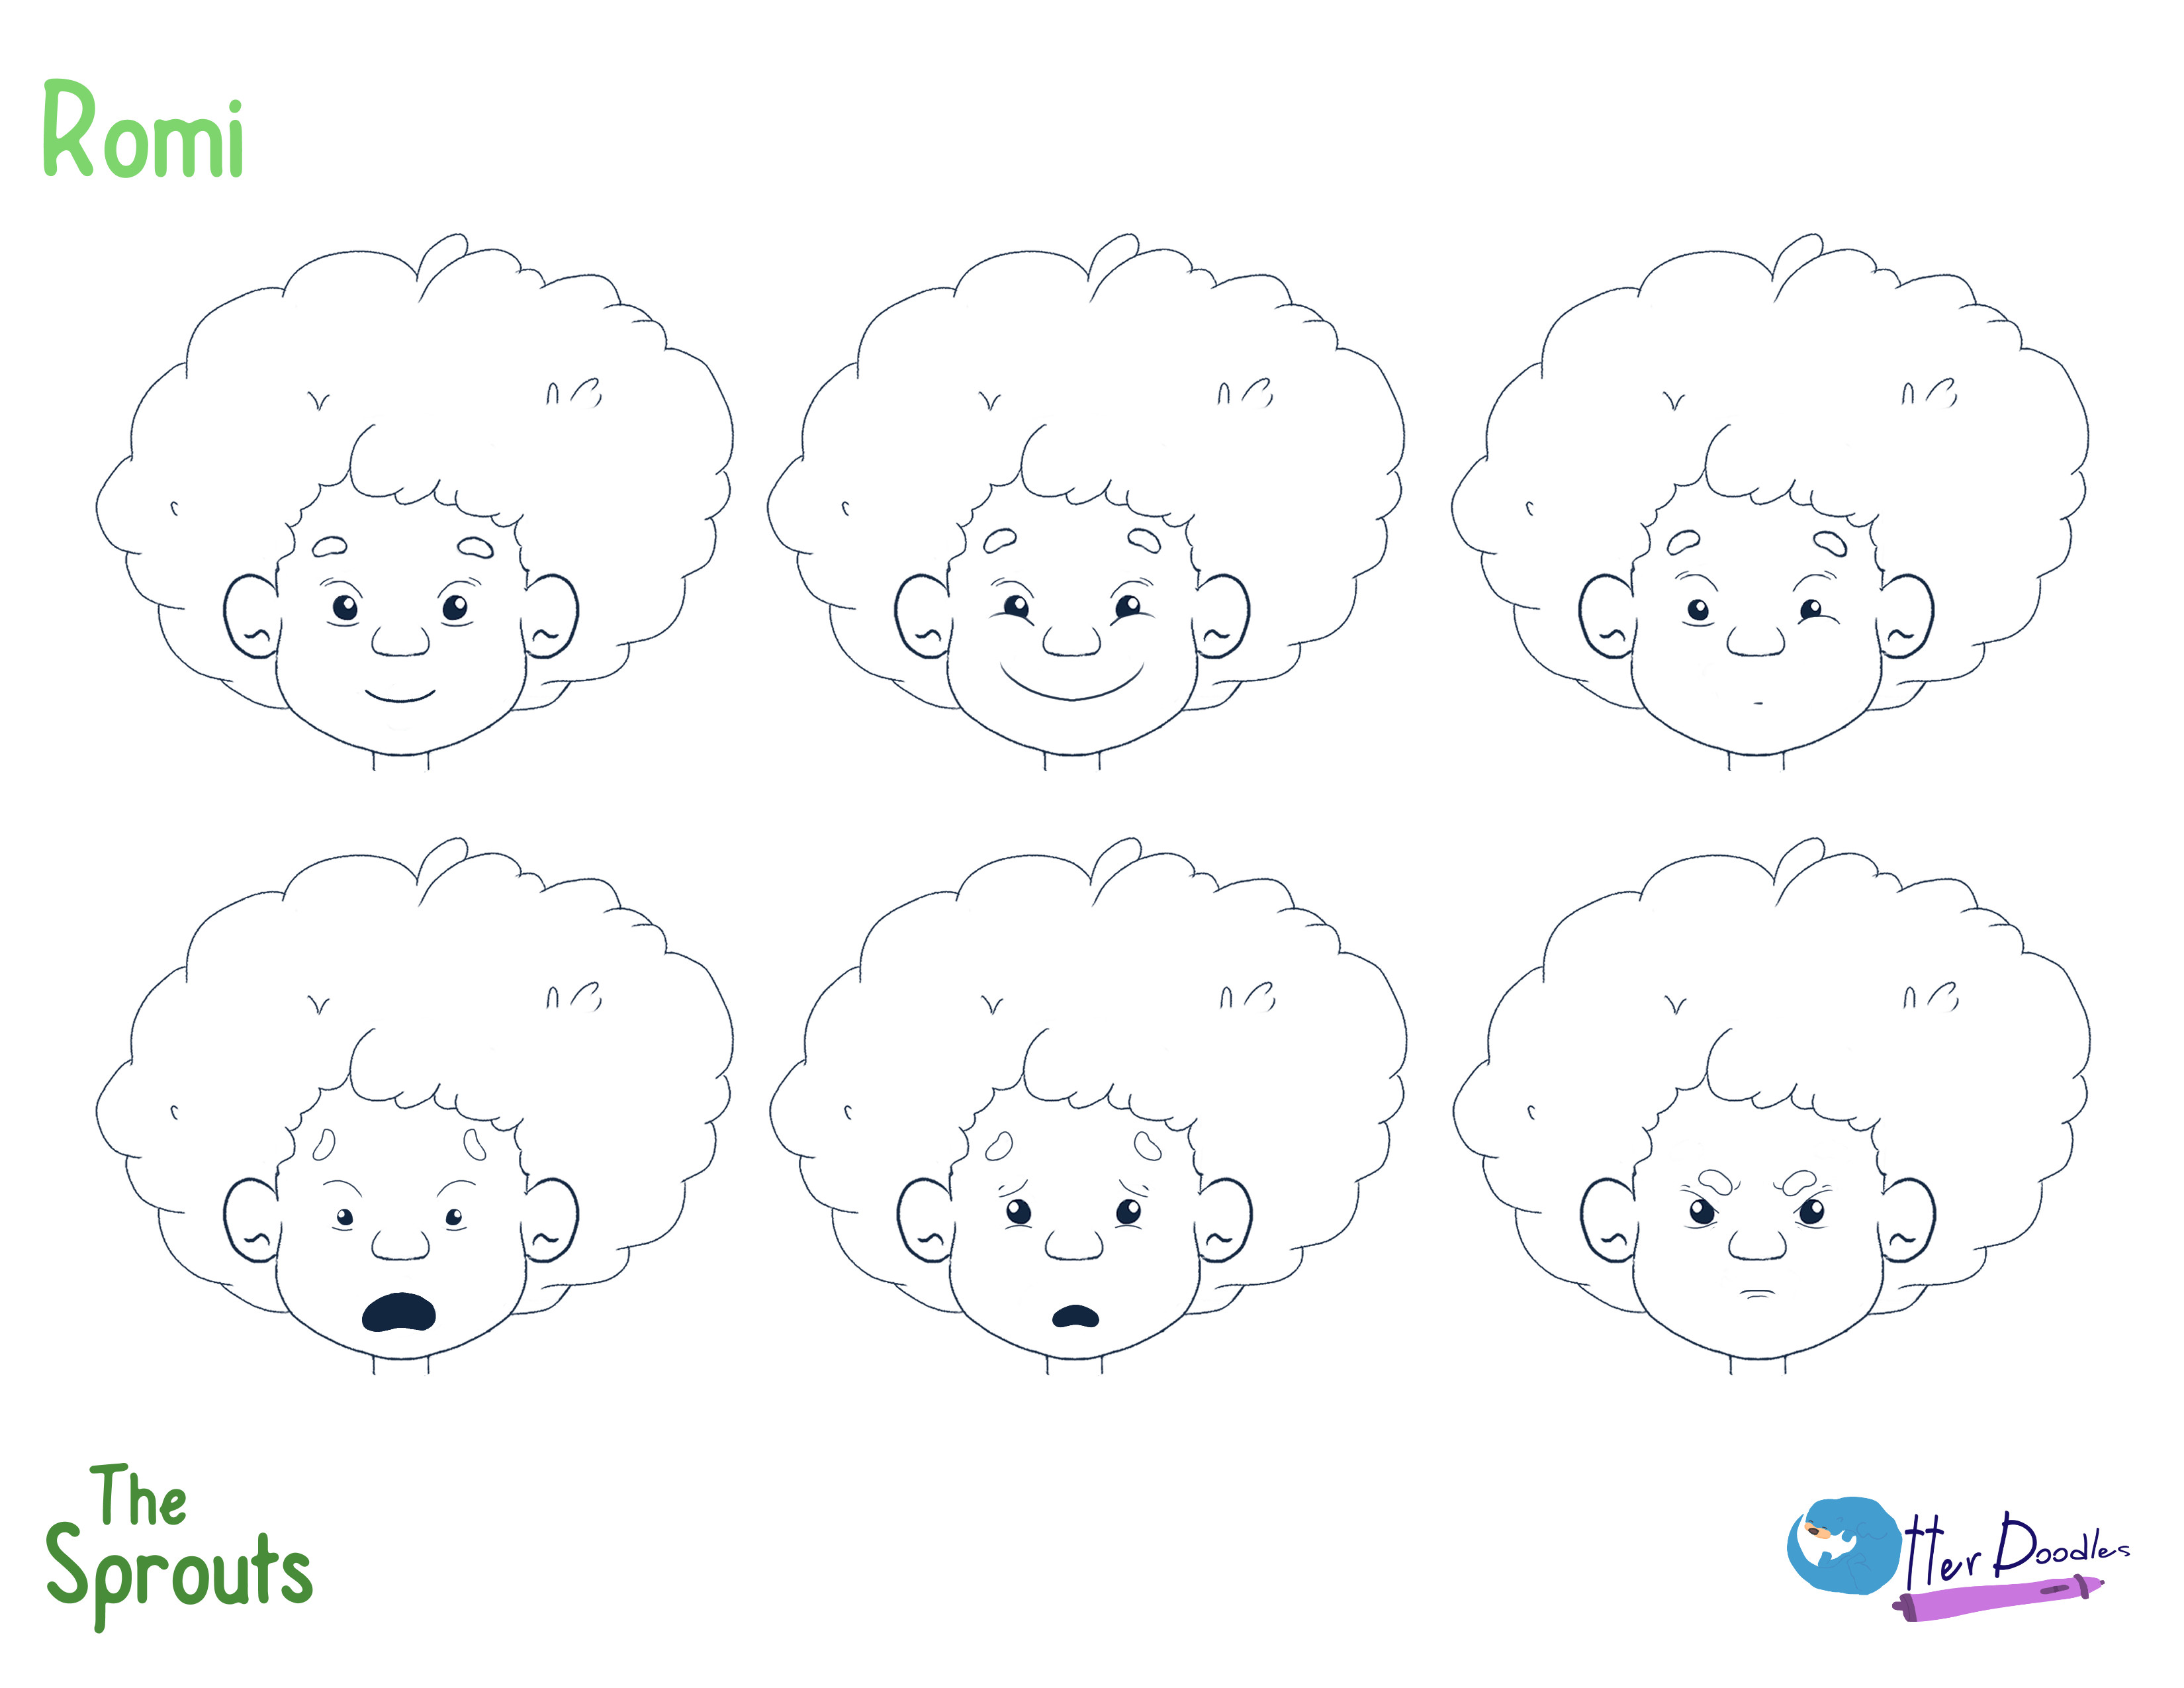 The Sprouts: Romi Expressions Model Sheet